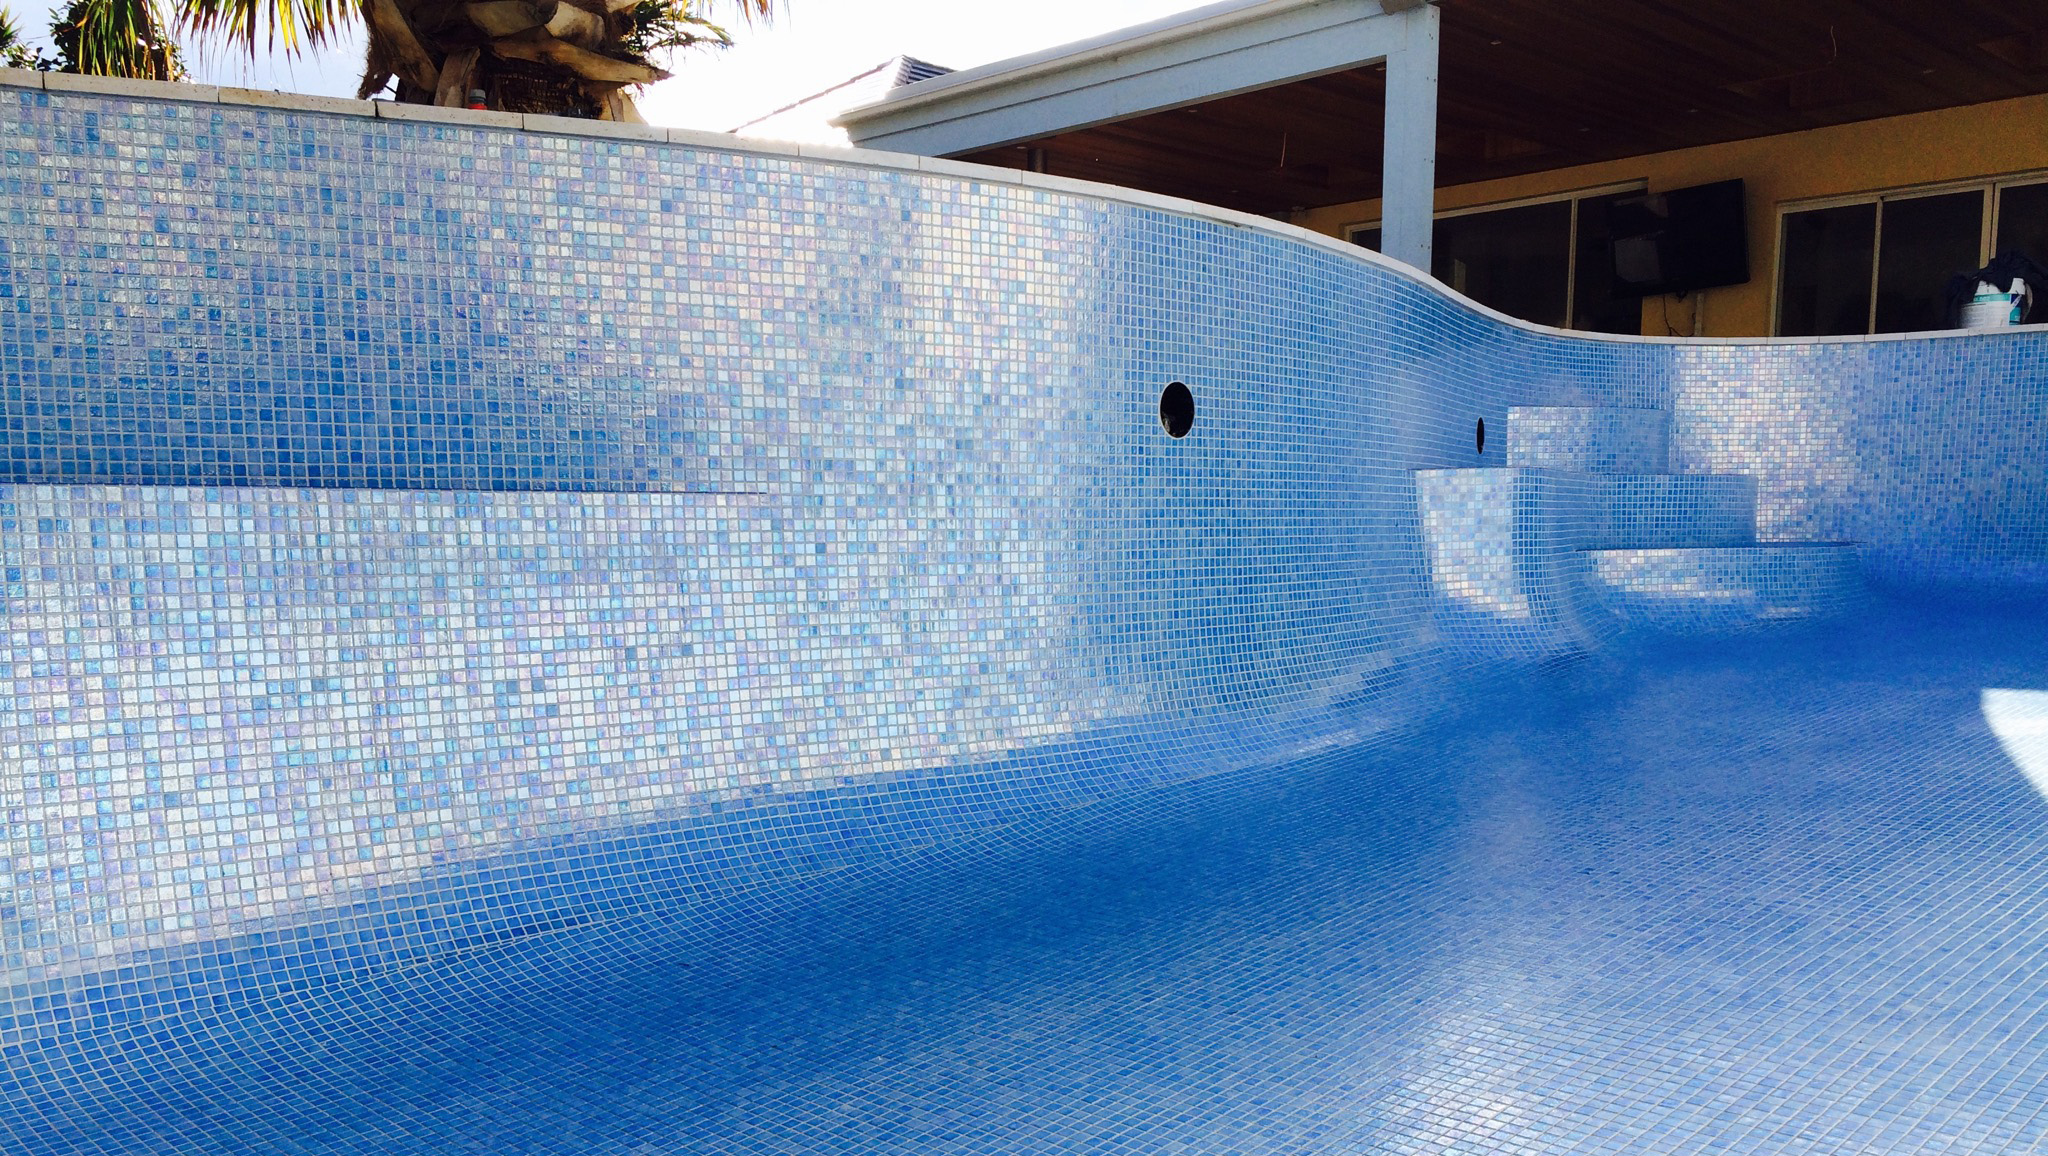 swimming pool tiling mosaic sydney renovations rendering copingFile9